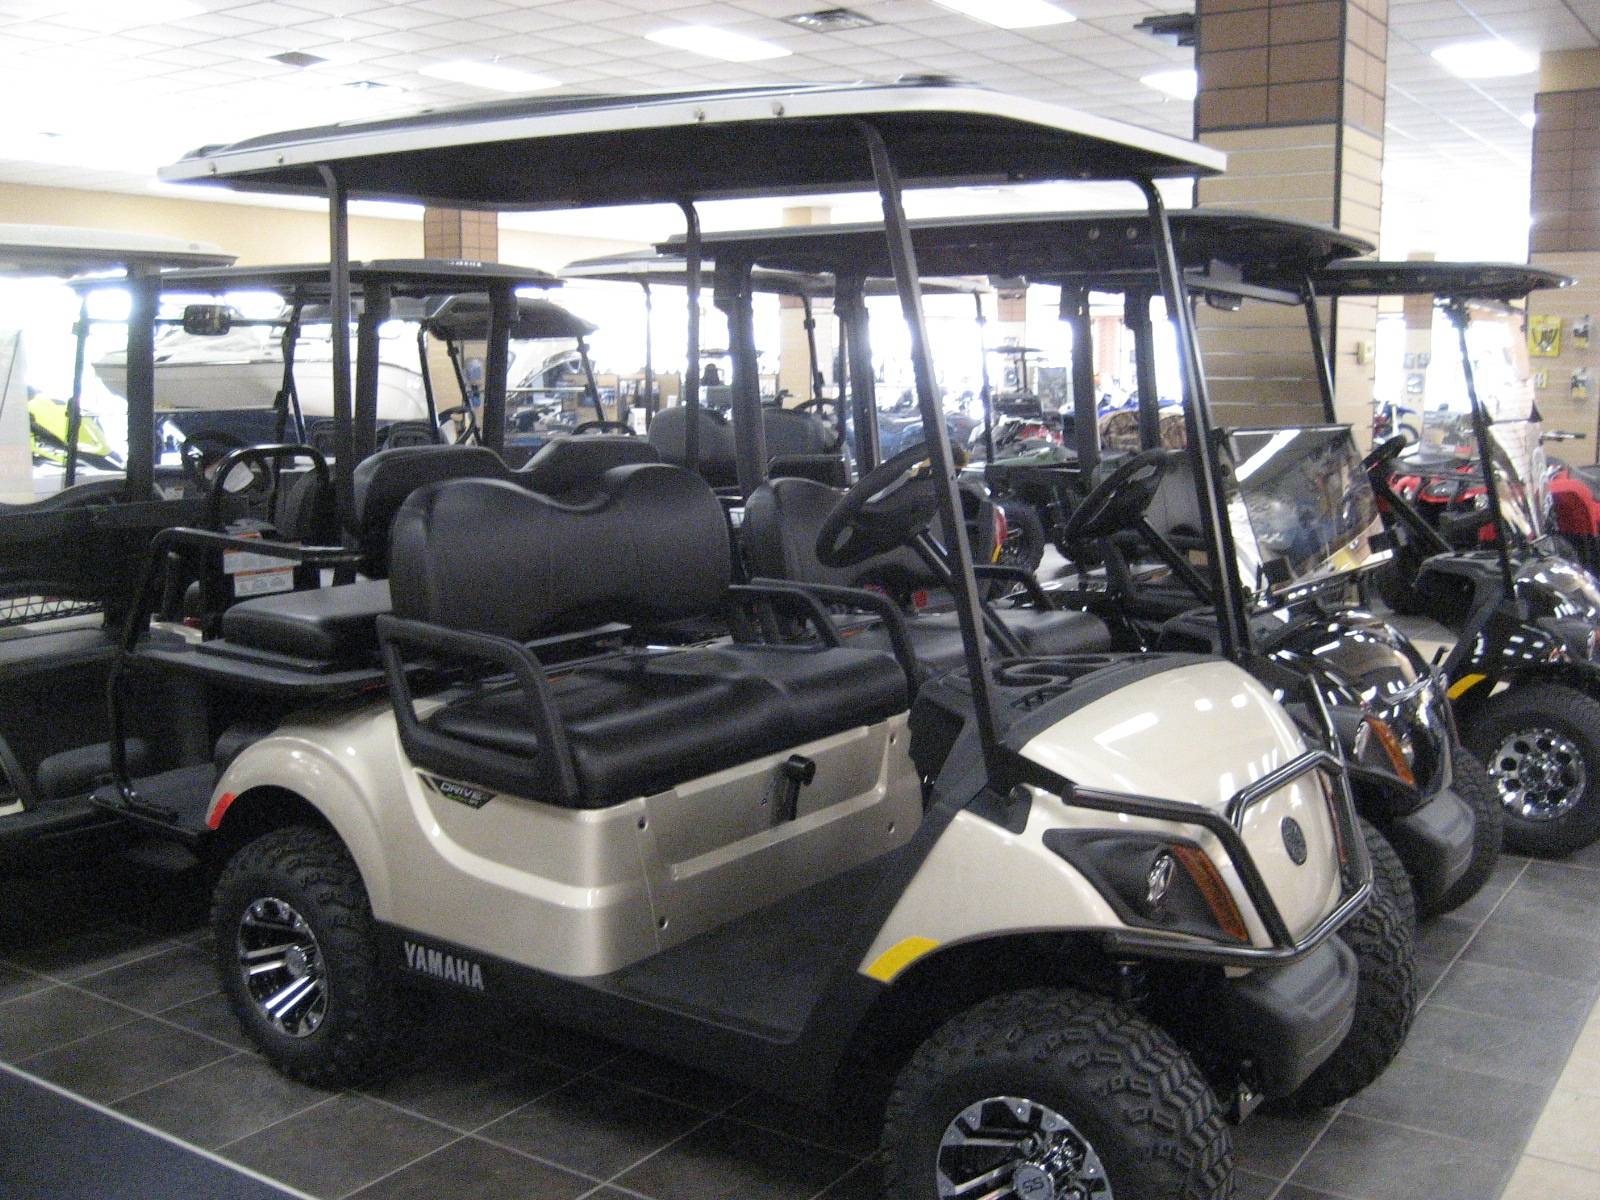 New 2019 Yamaha Adventurer Sport 2+2 (Gas) Golf Carts in ... Yamaha Gas Golf Cart Prices on yamaha gas golf car, 1995 golf cart prices, yamaha g1 golf cart prices, used golf cart prices, yamaha golf carts product, yamaha drive lift kit, 2001 yamaha golf cart prices, ezgo golf cart prices, yamaha golf buggies, harley davidson golf cart prices, yamaha golf cars prices, yamaha drive gas, yamaha gas powered golf carts, ez cart golf cart prices, yamaha gas golf carts lifted, new gas lifted golf carts prices, gas powered golf cart prices, electric golf cart prices, yamaha golf carts by year,